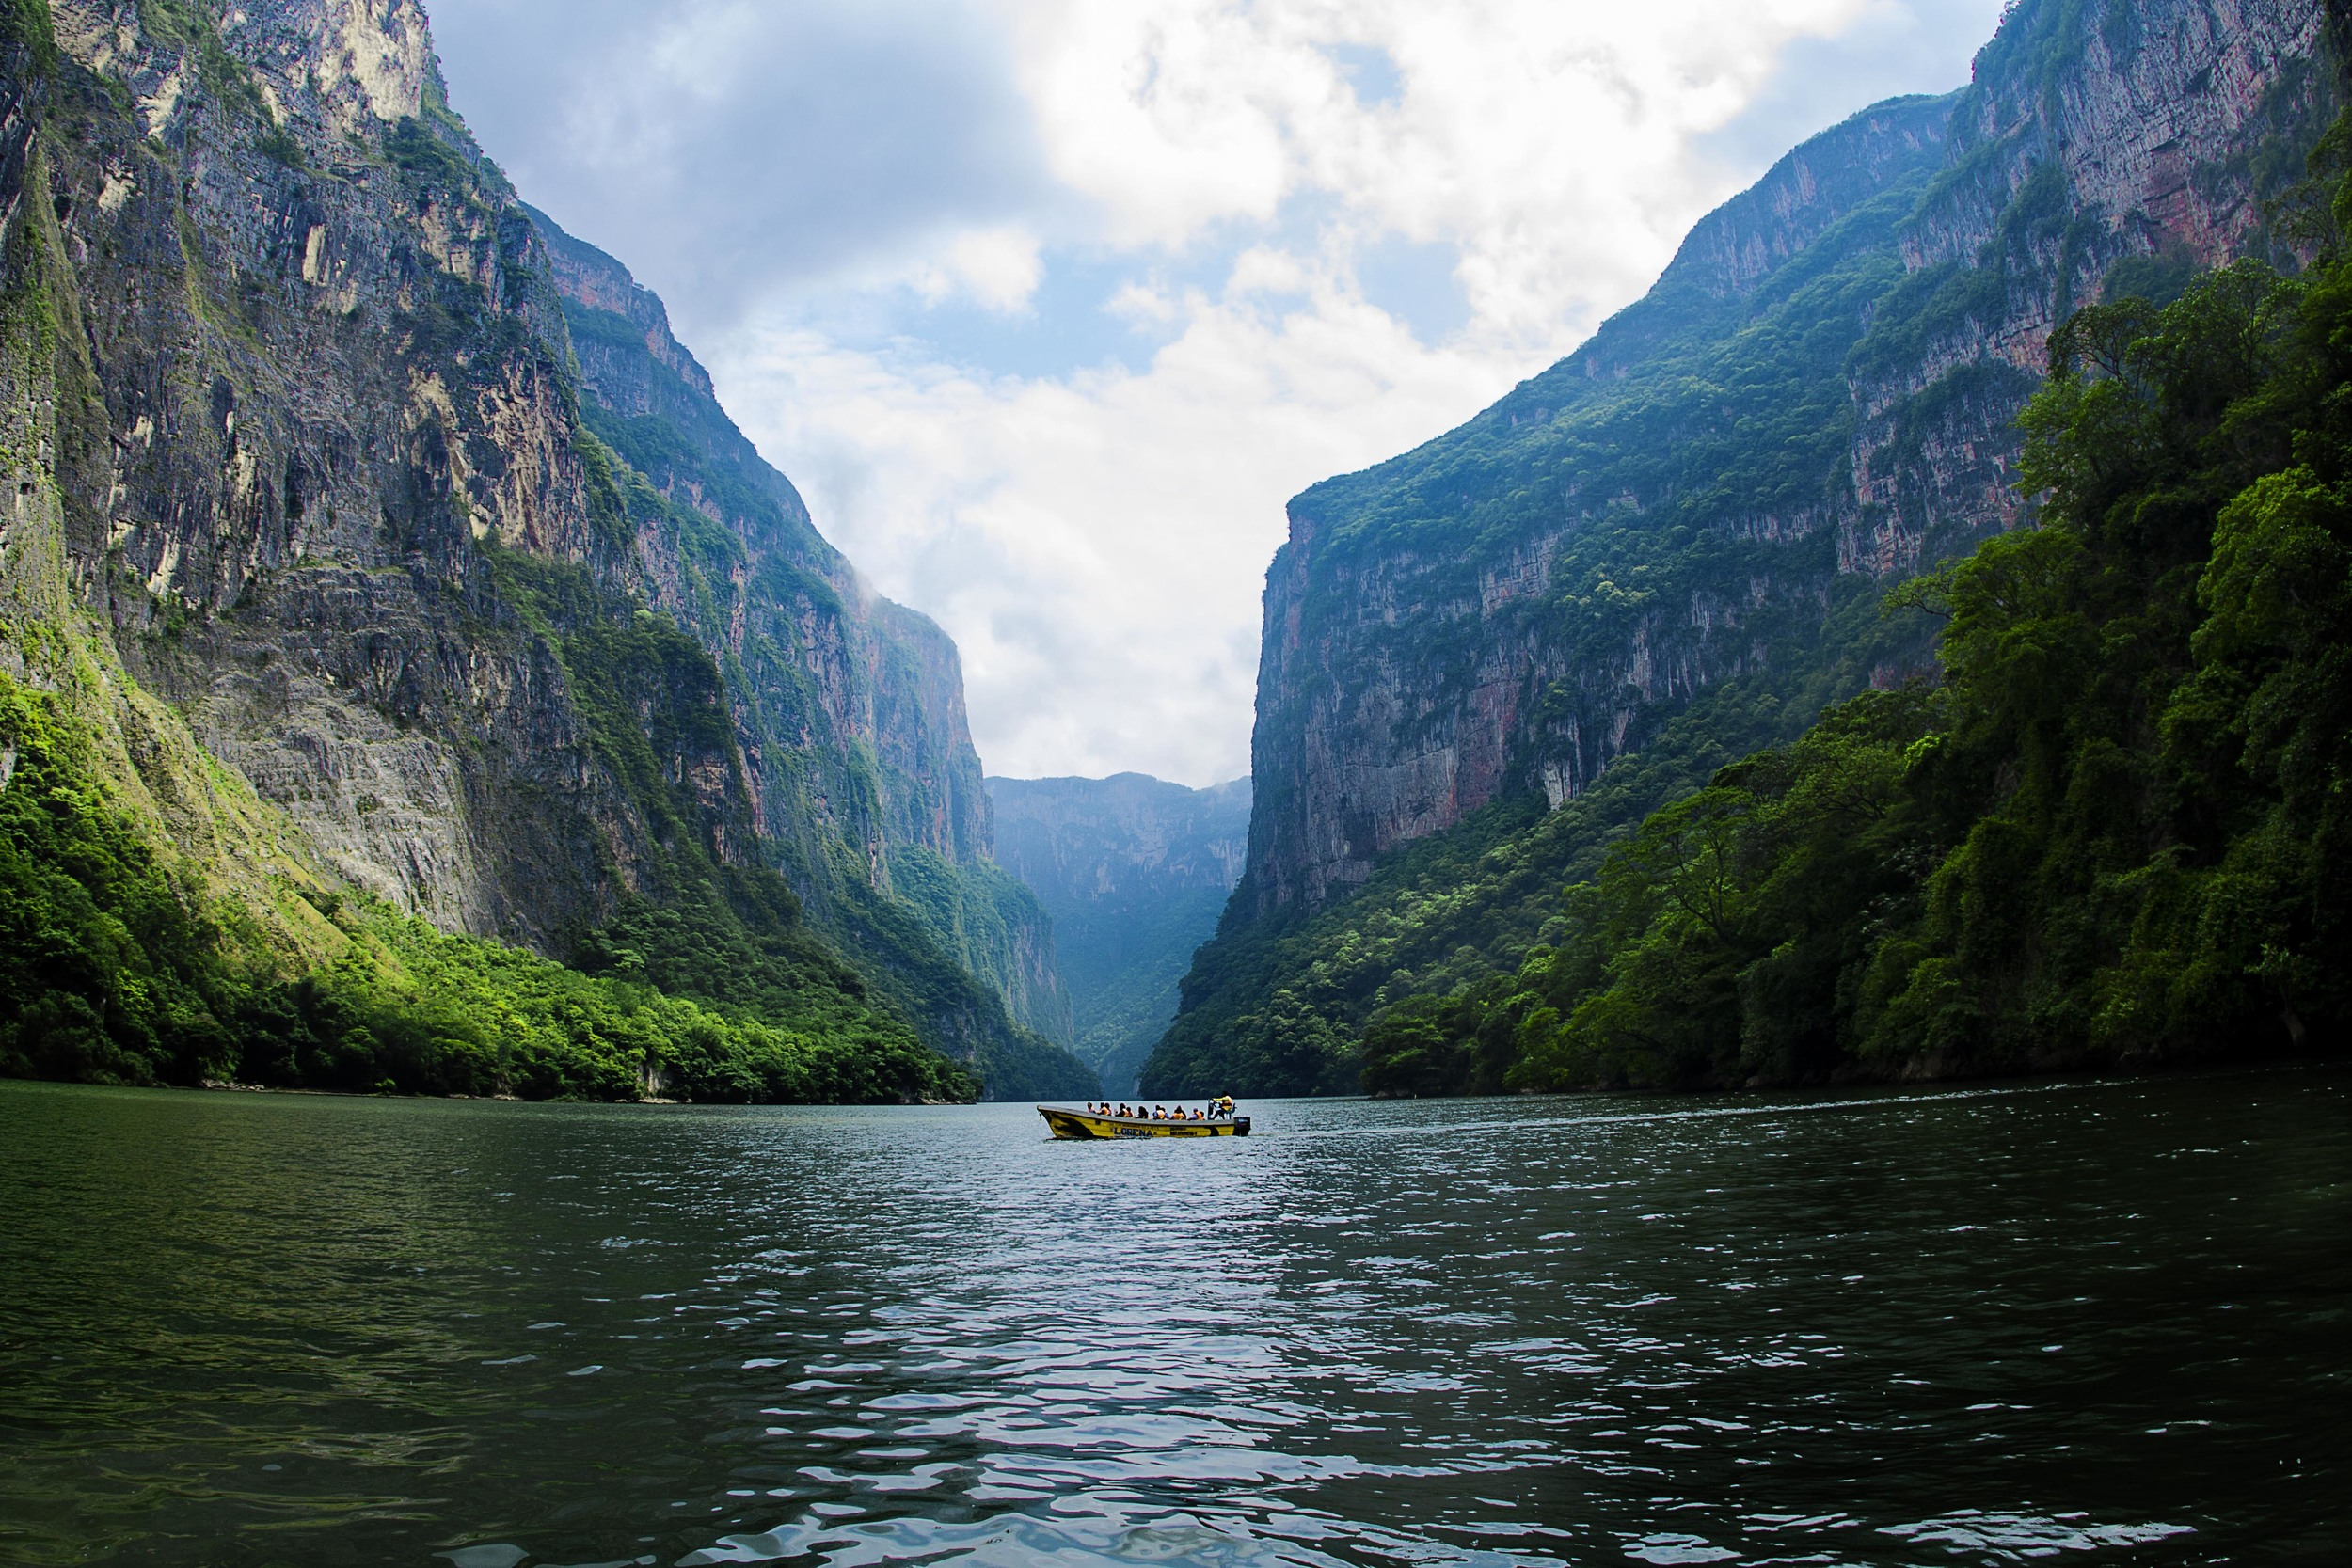 Day 128 - Cañón del Sumidero, Chiapas, Mexico June 1, 2015   Another tour takes us to this amazing narrow and deep canyon surrounded by a national park just outside of Chiapa de Corzo. This canyon is about as old as the Grand Canyon in Arizona, USA where at the end of it is the dam that creates almost half of Mexico's electricity and a third of Guatemala's.